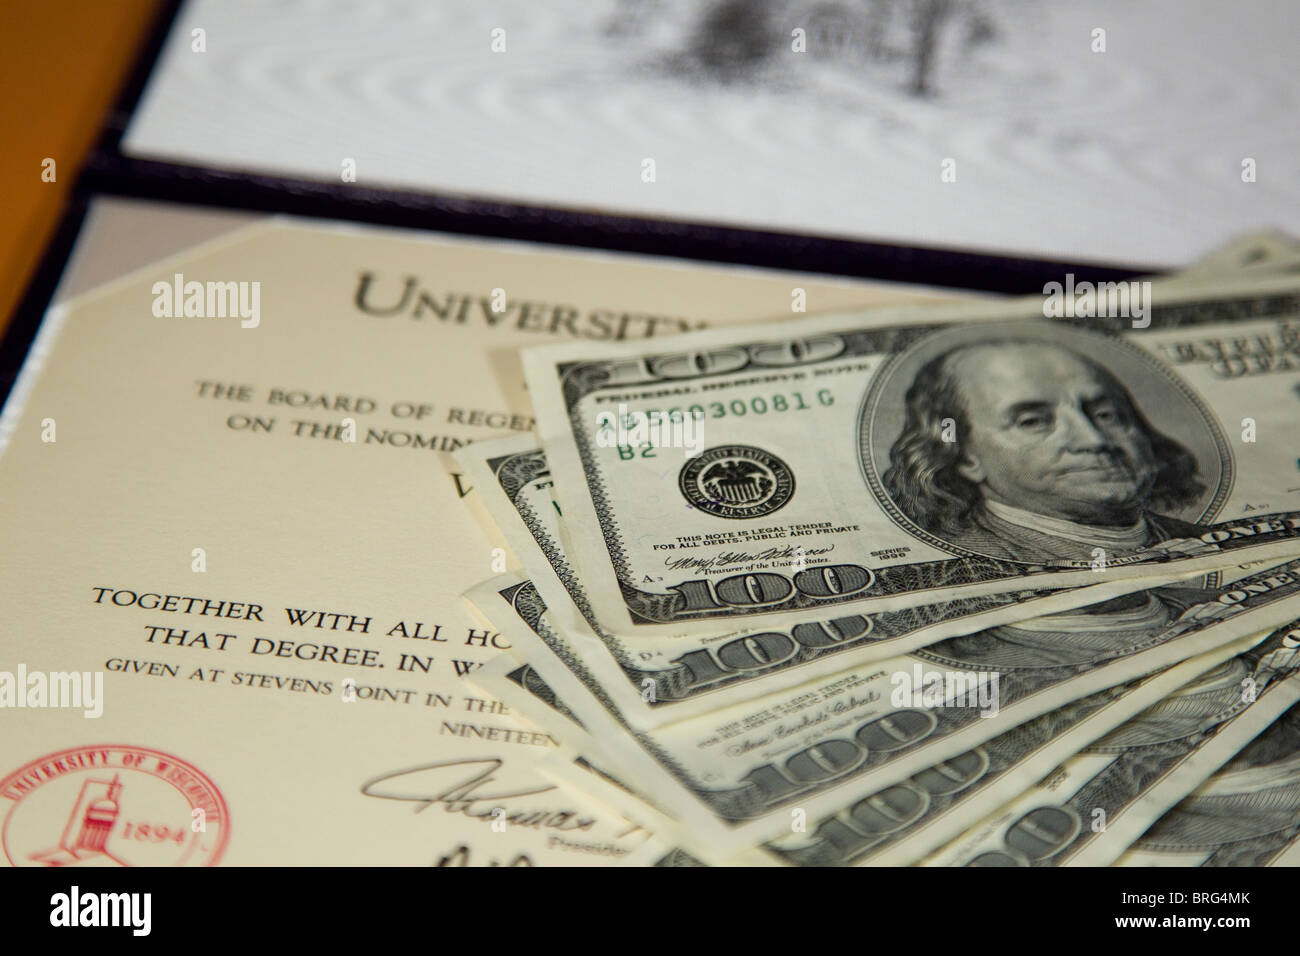 Money and diploma, tuition and fees for college degree - Stock Image